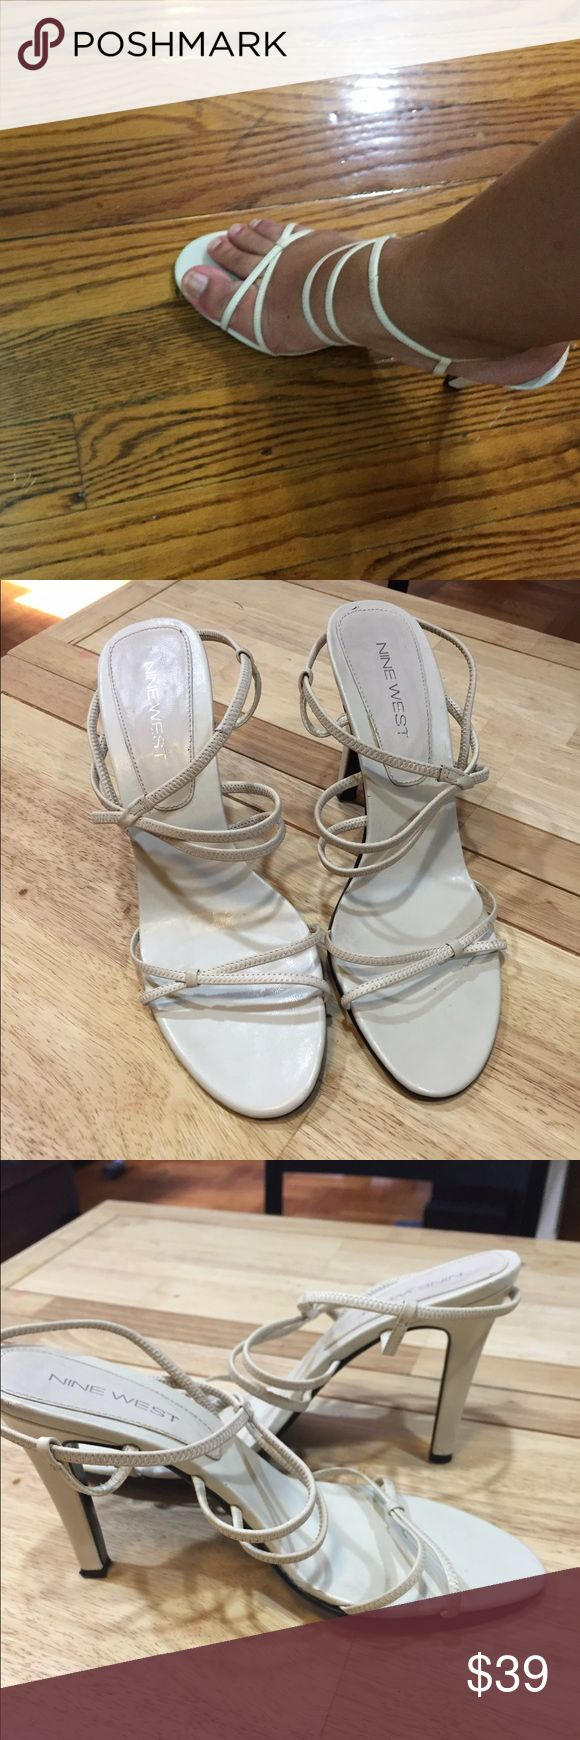 Nine West cream strappy heels Good condition Nine West cream strappy heels. These heels/sandals go with any outfit. They are a size 8 with a 4 inch heel. Unfortunately after multiple foot surgeries I can no longer wear heels Nine West Shoes Heels